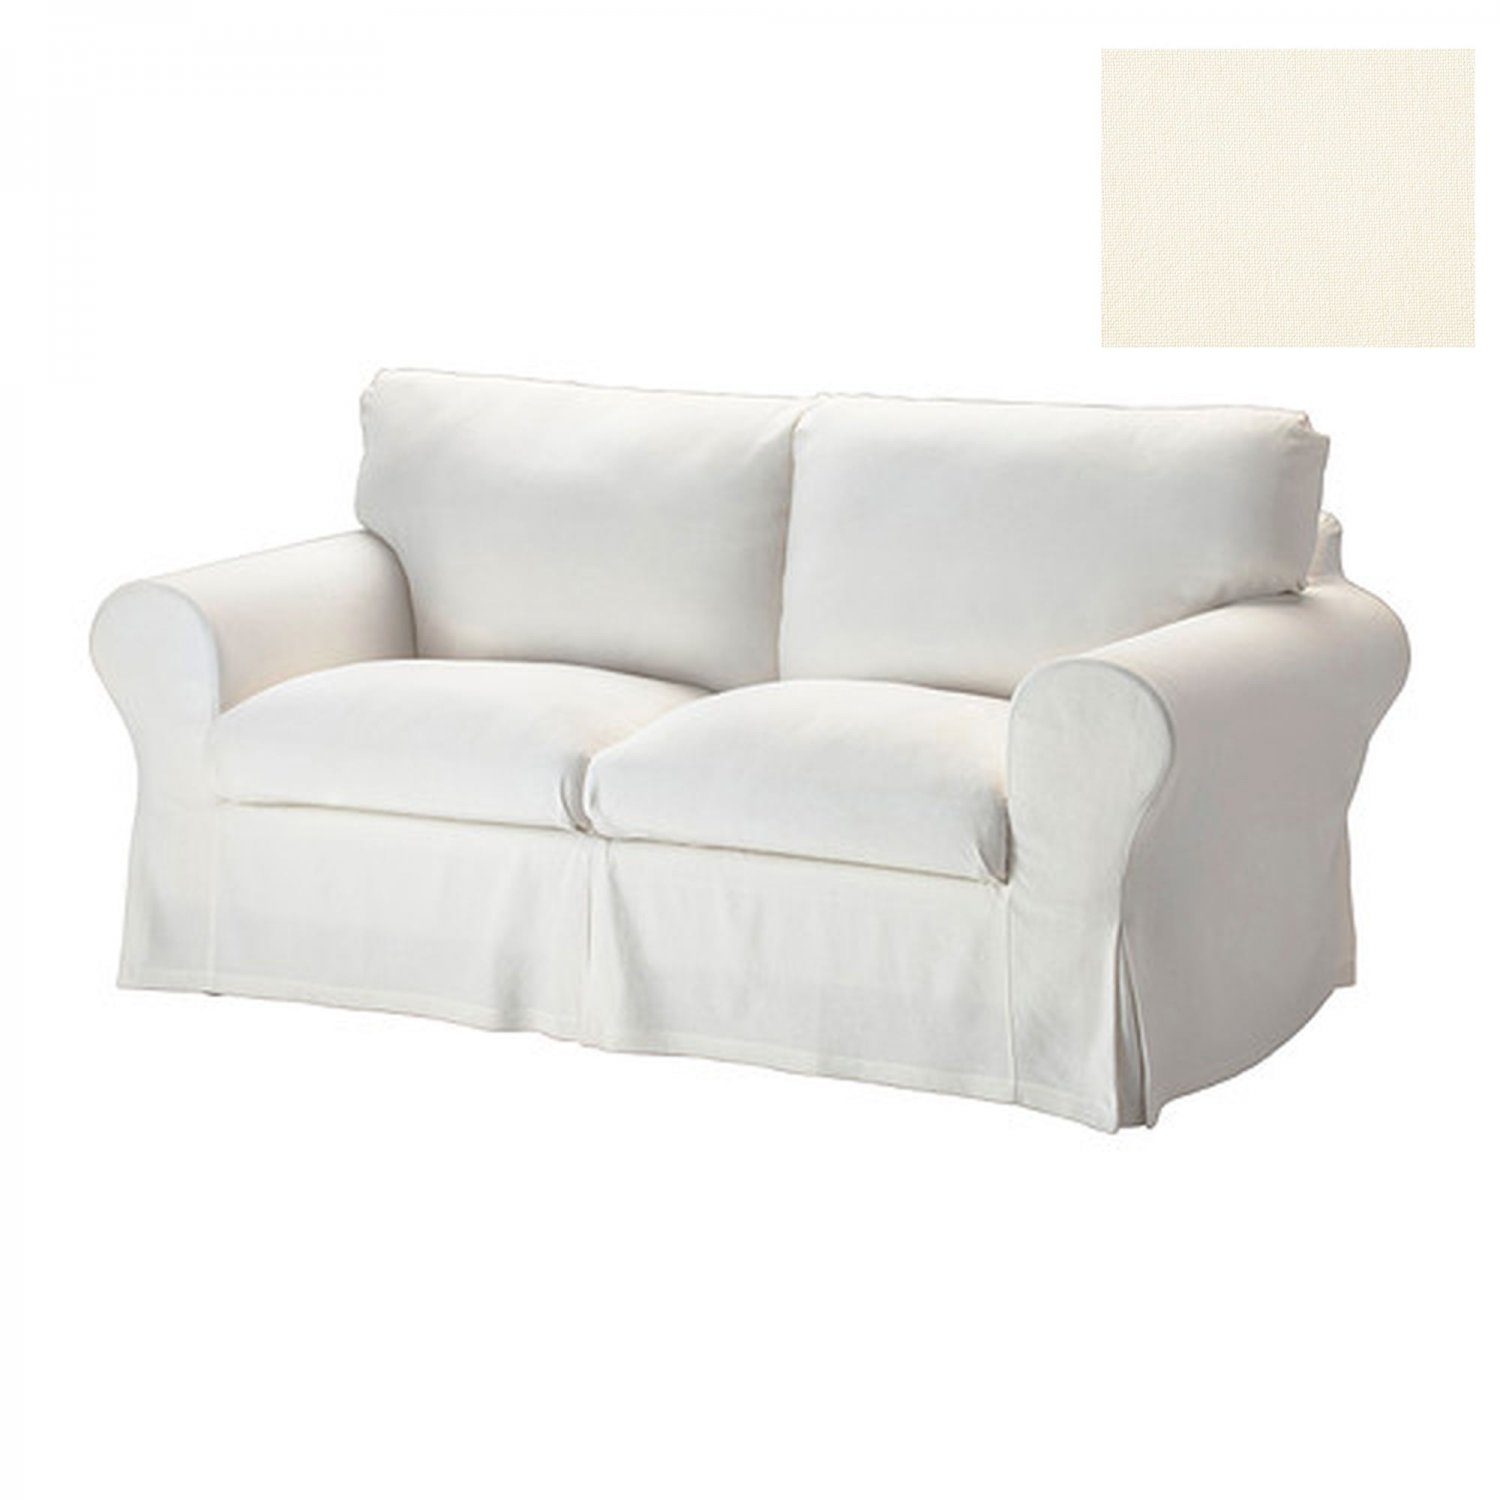 Ikea ektorp 2 seat sofa slipcover loveseat cover stenasa for White linen sectional sofa